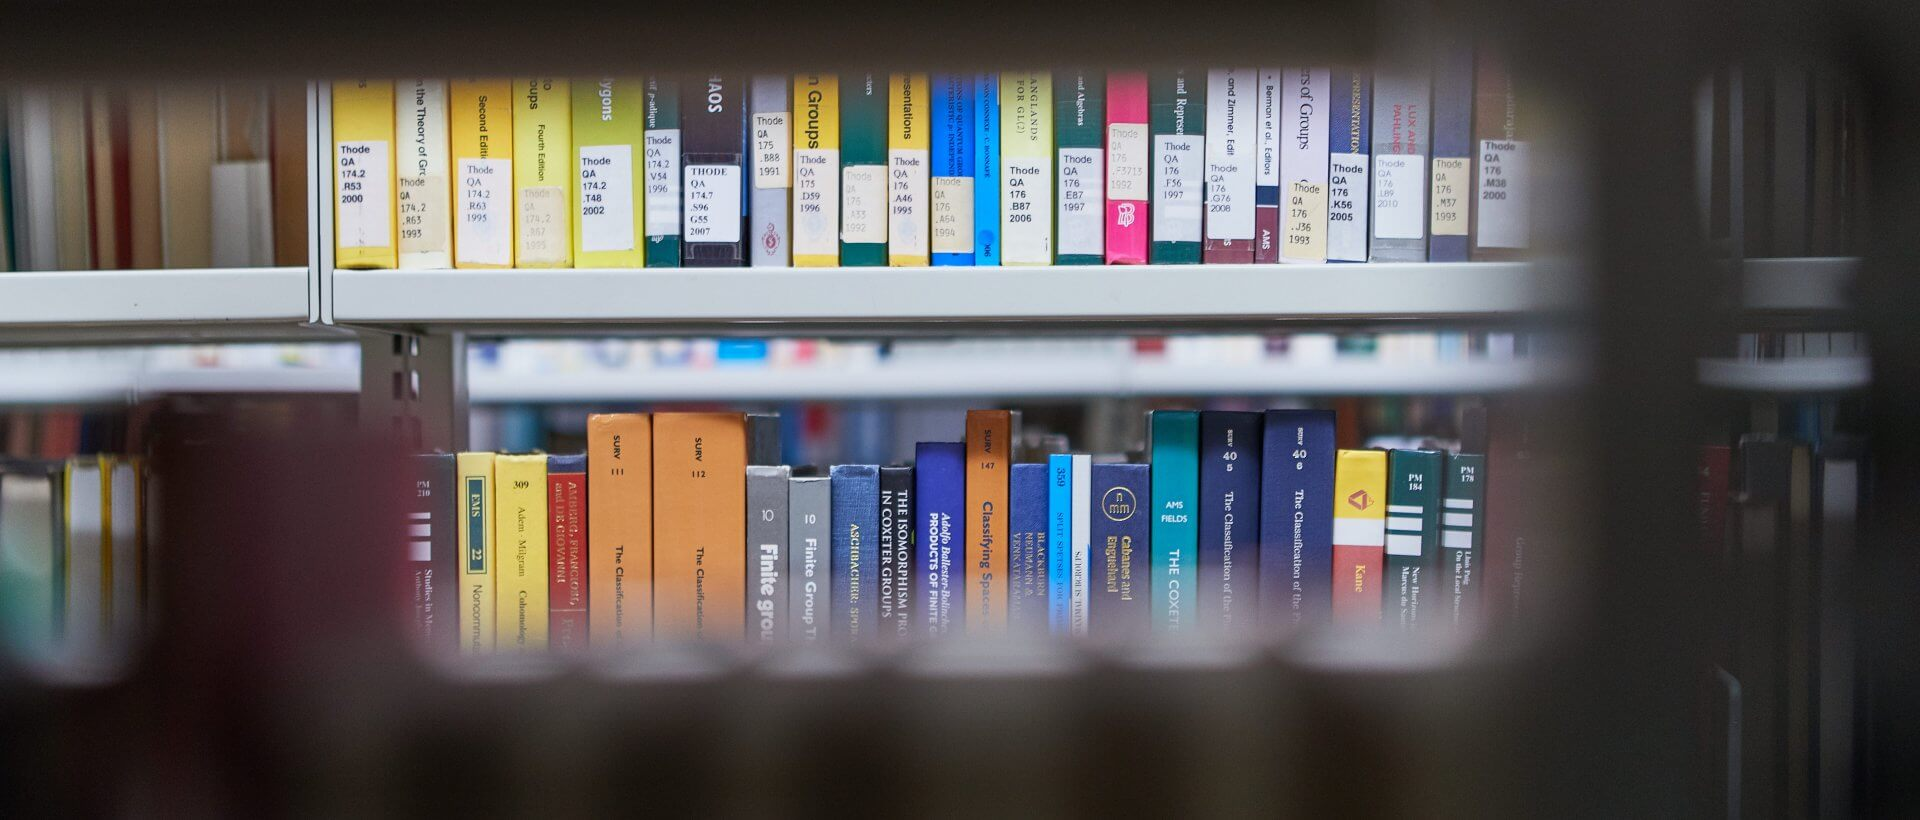 Between the bookshelves of Thode Library